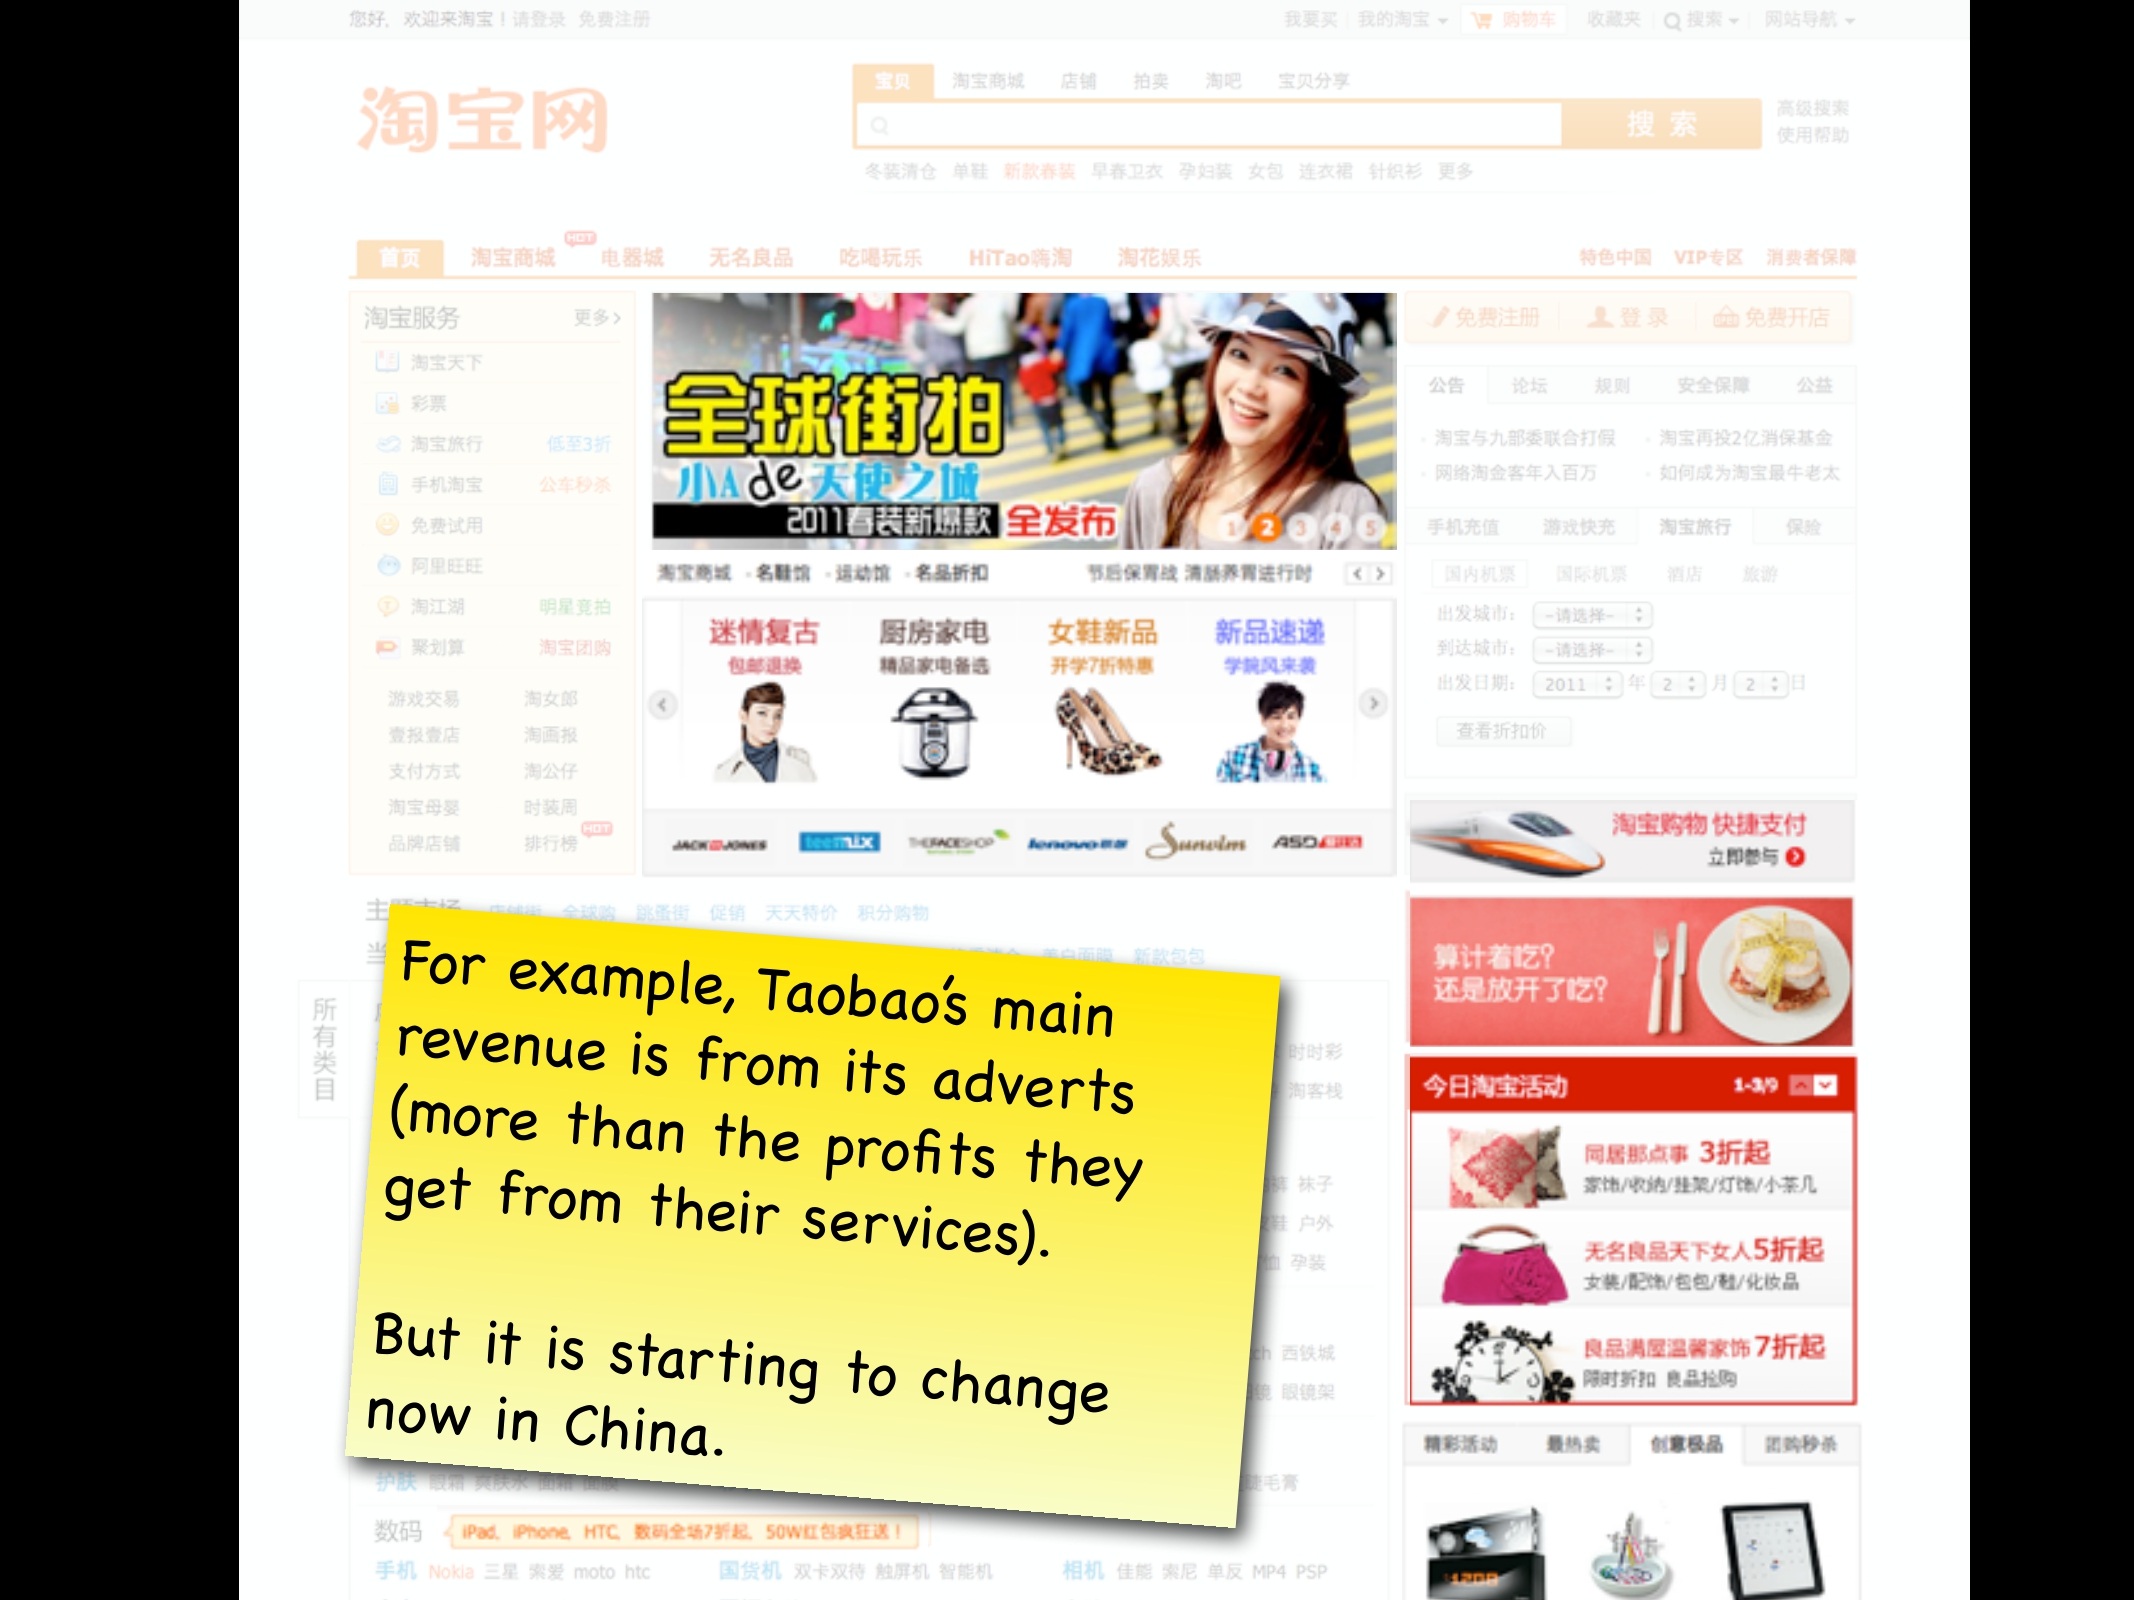 Chinese Web Design Patterns 2011_pages-to-jpg-0035.jpg